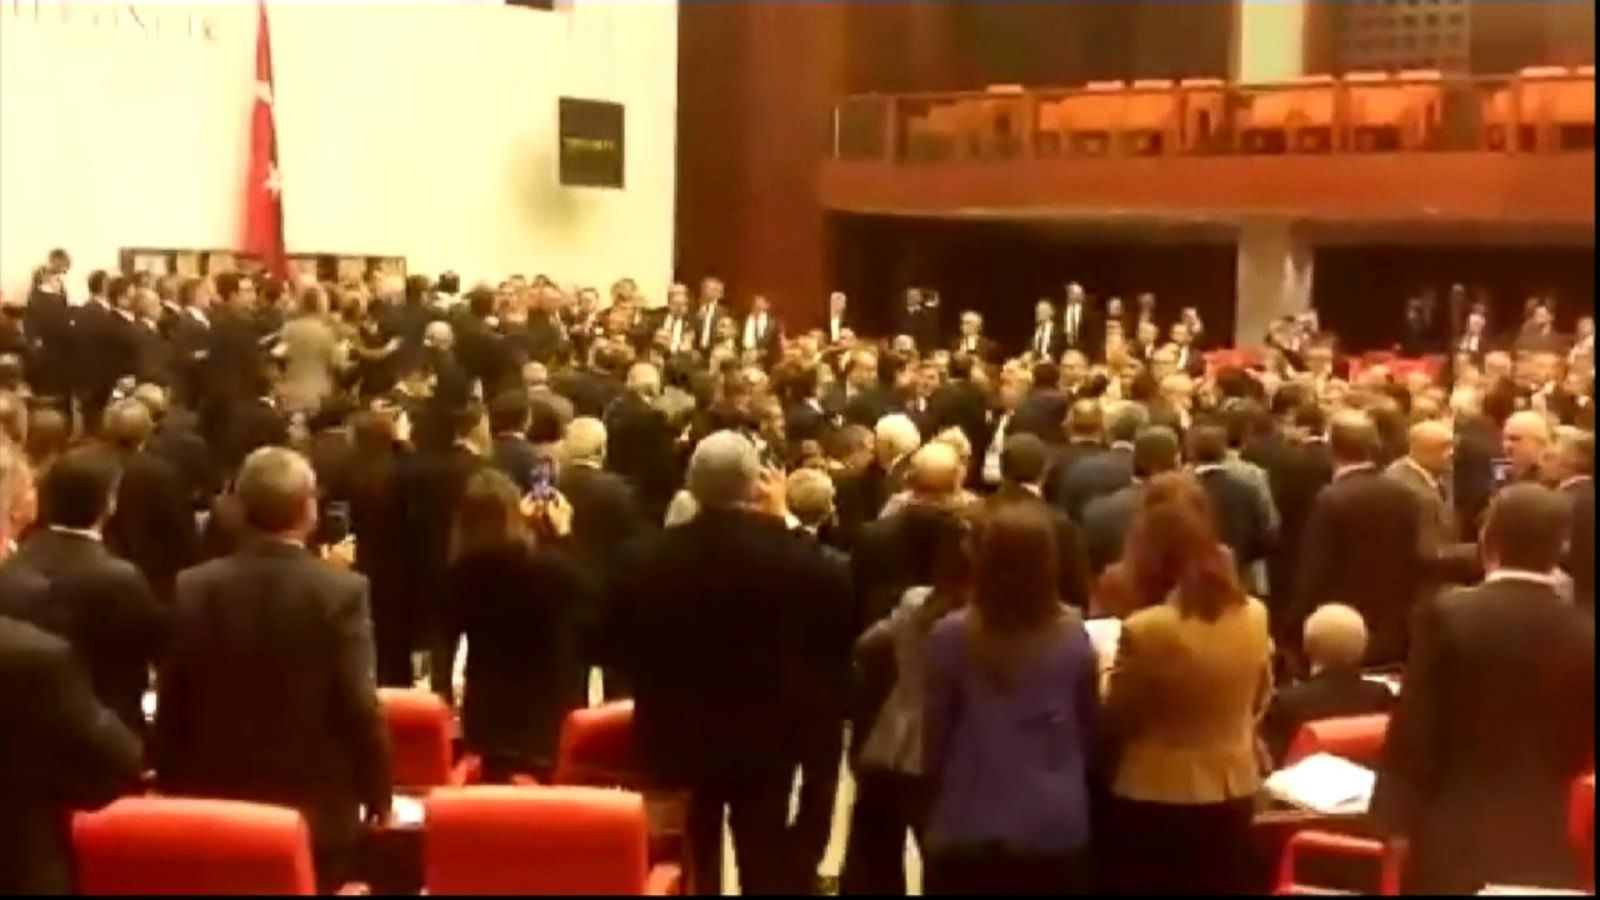 Brawl Erupts in Turkeys Parliament Over Constitutional Reform